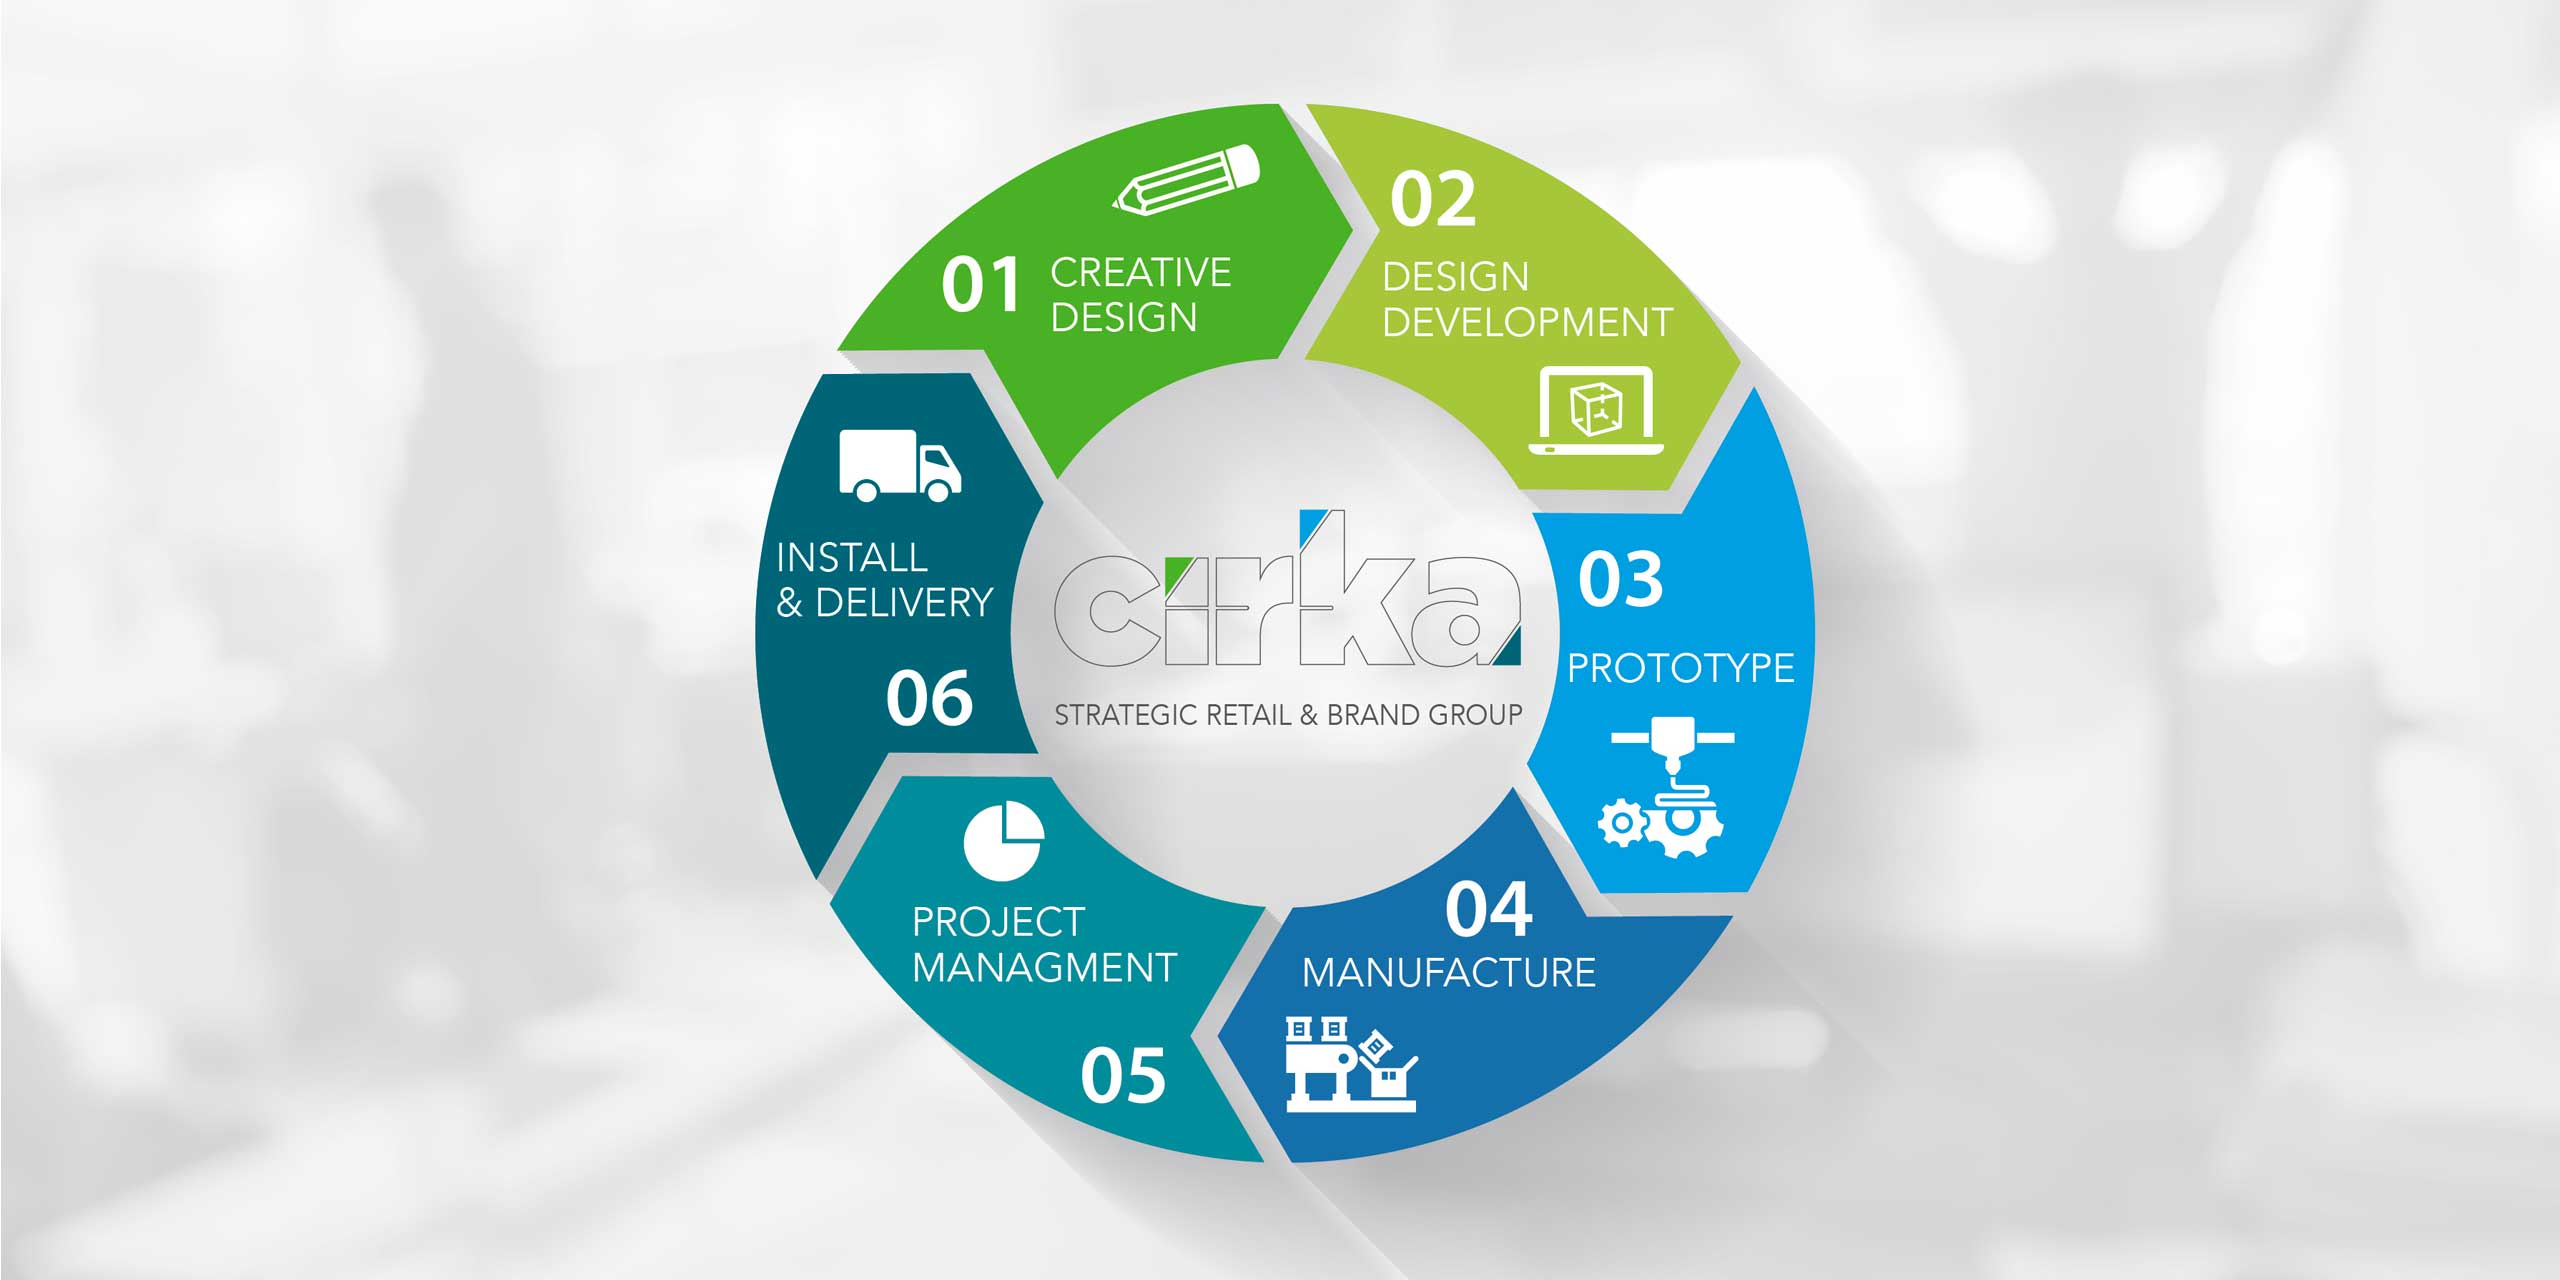 infographic showing cirka creatives services